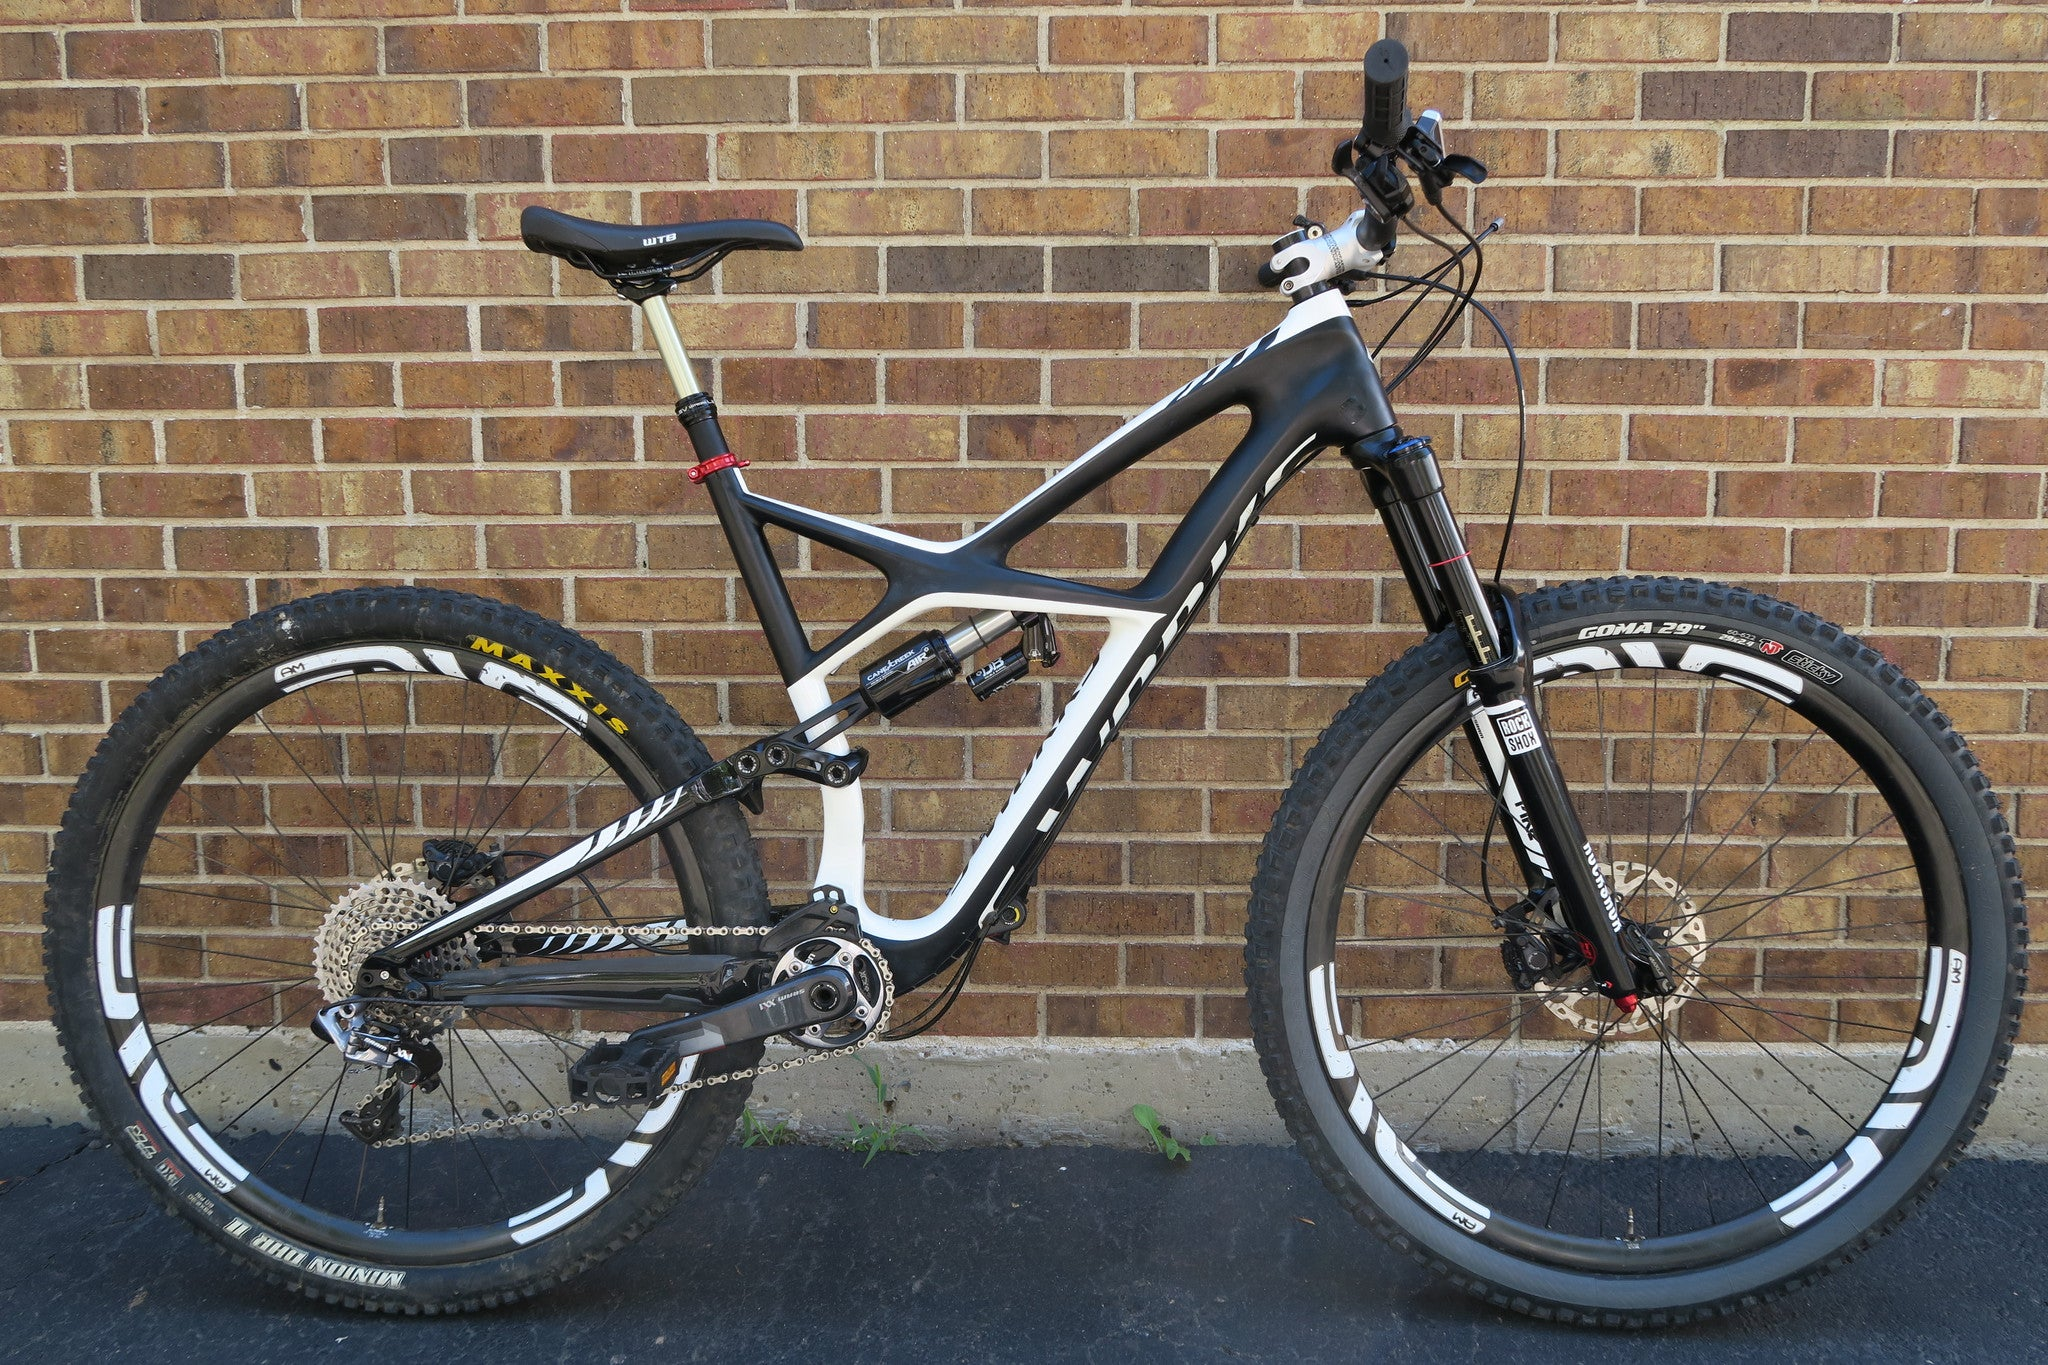 2014 S-WORKS ENDURO 29